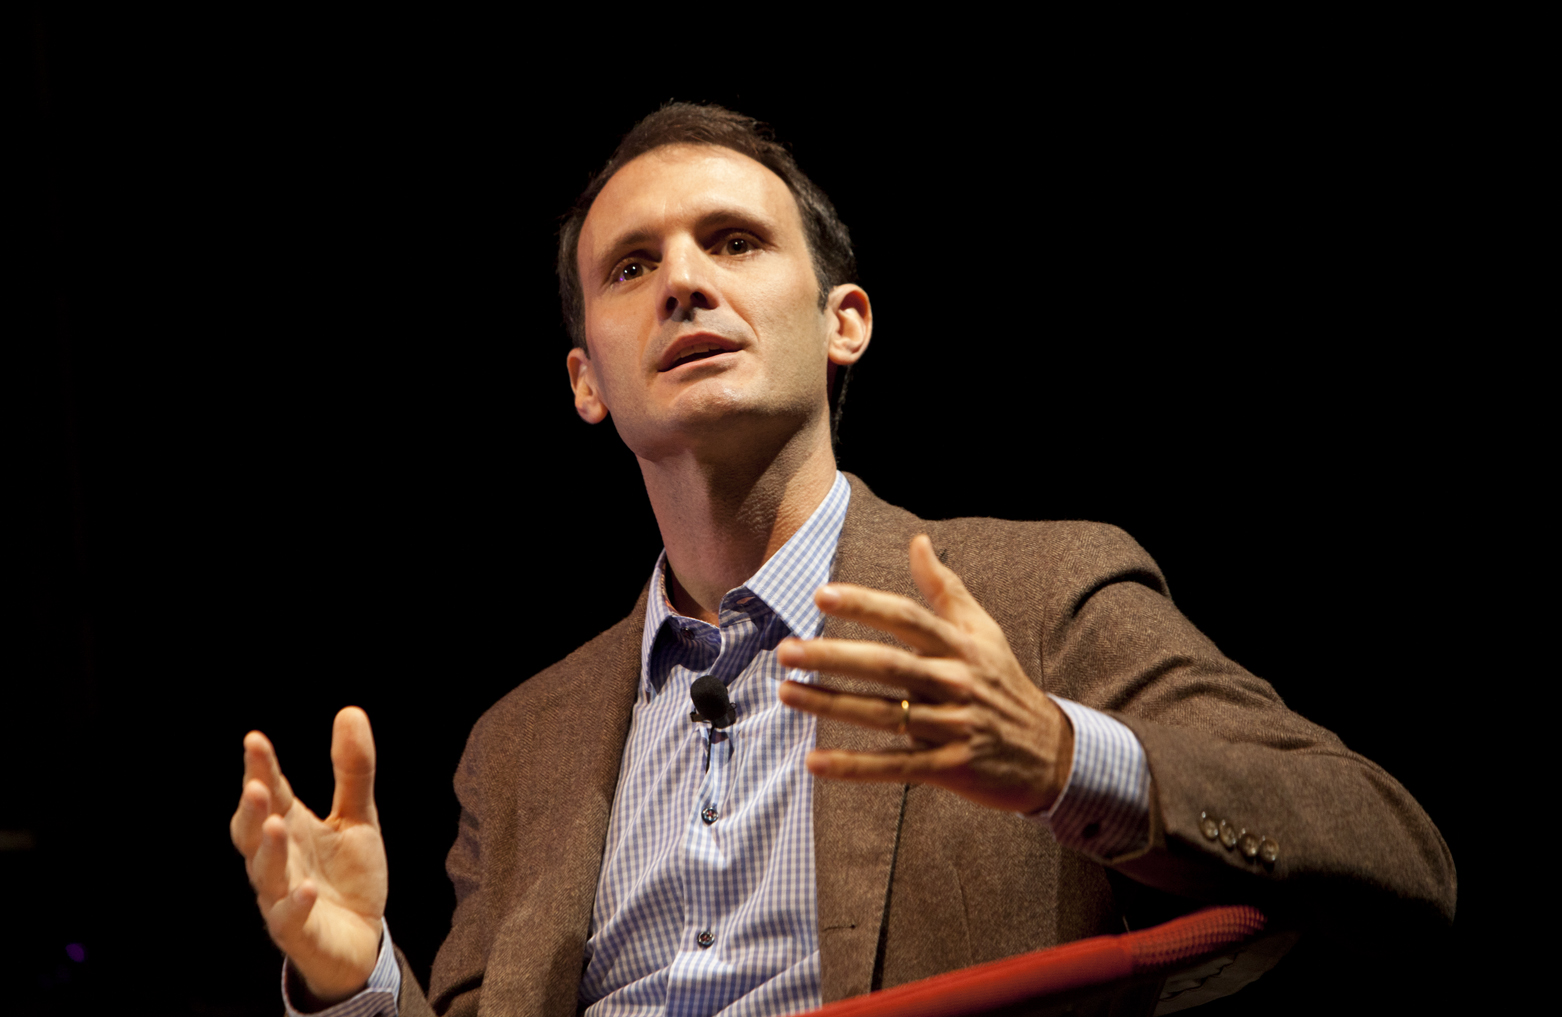 Image of Stephen Cave at IdeaFestival 2014, Geoff Oliver Bugbee